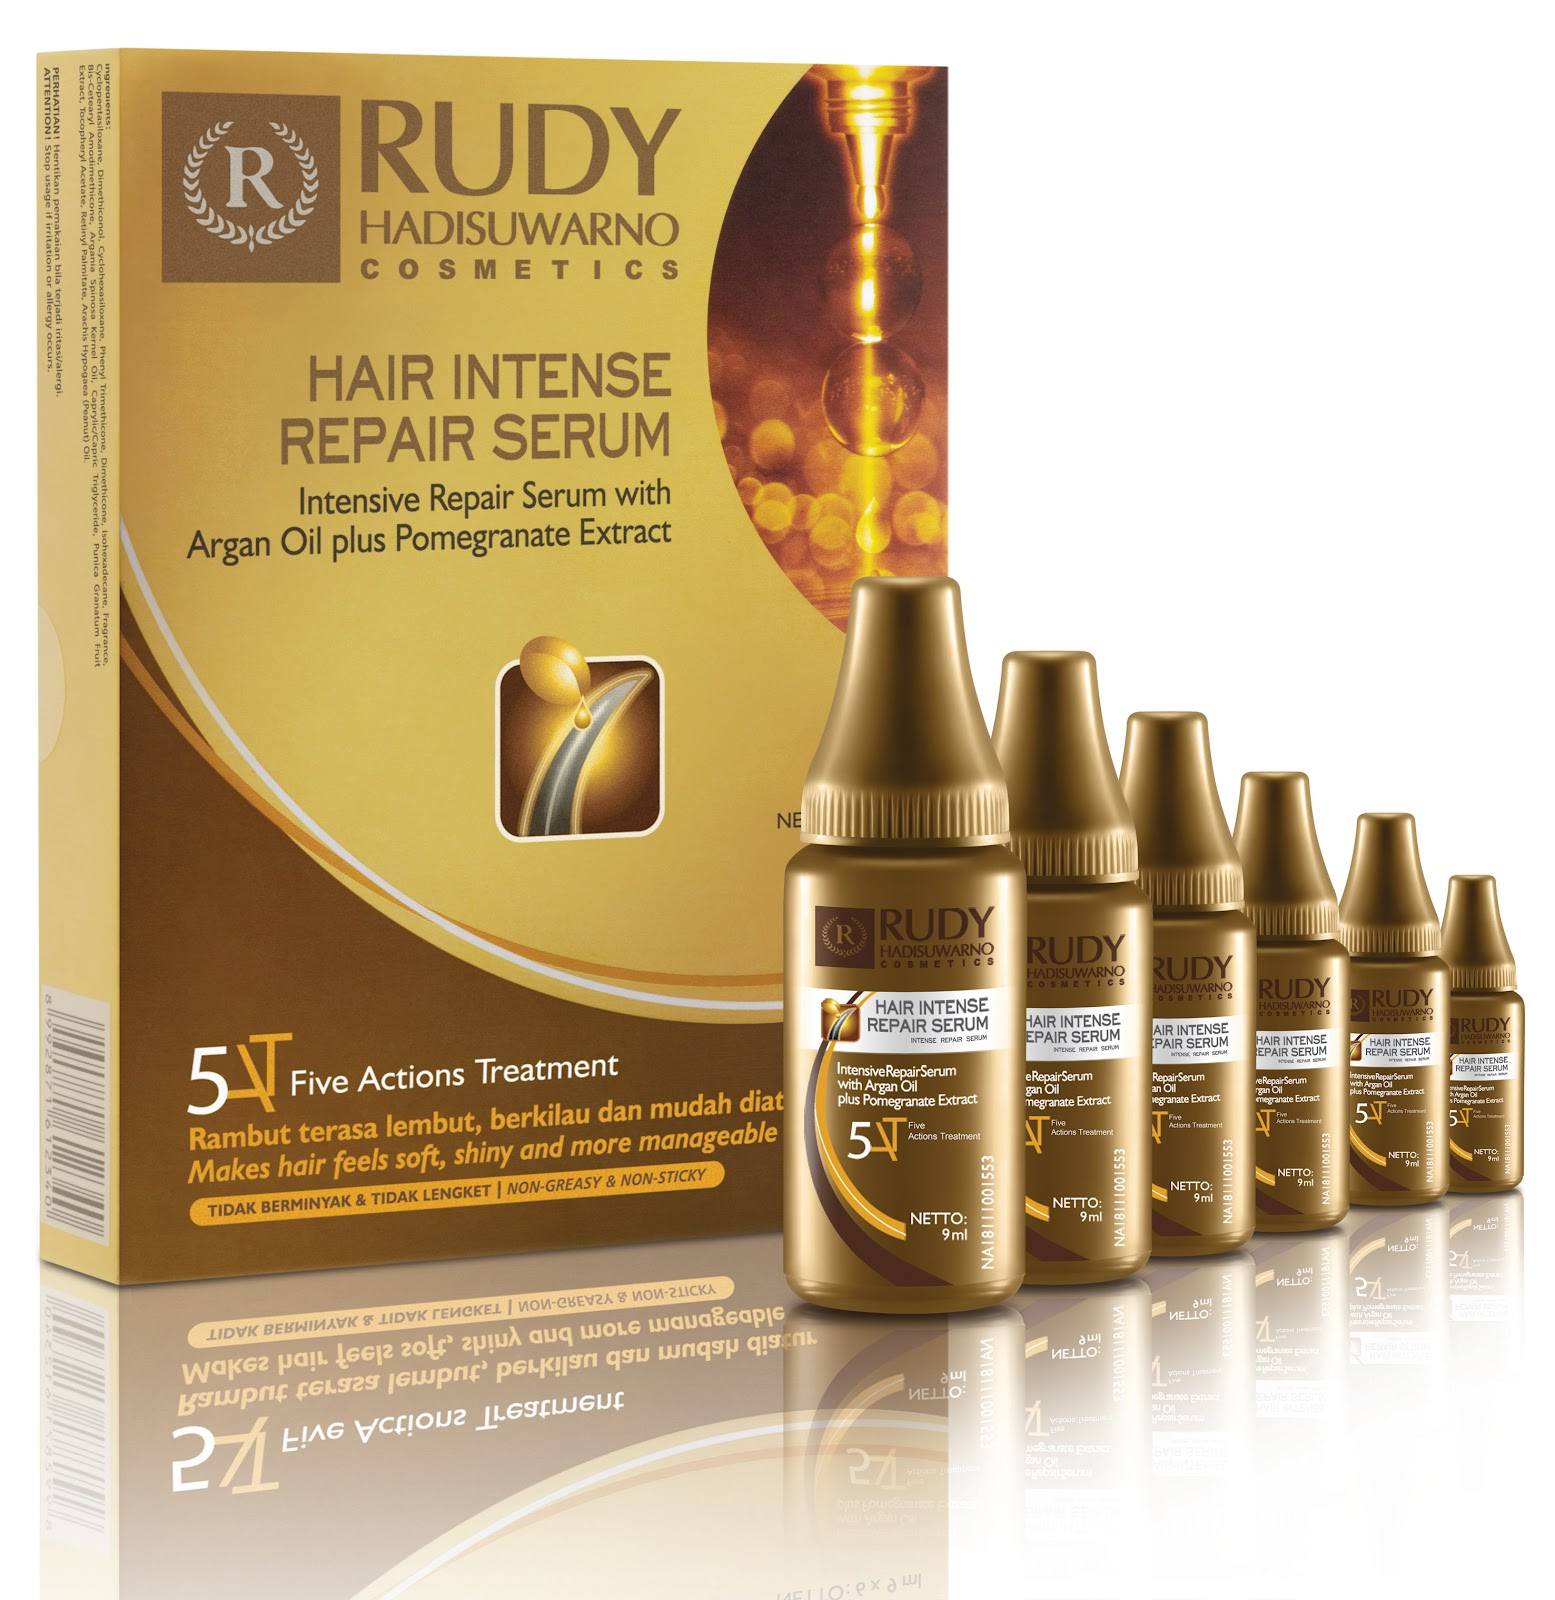 Event Rudy Hadisuwarno Hair Intense Repair Serum Launching Two